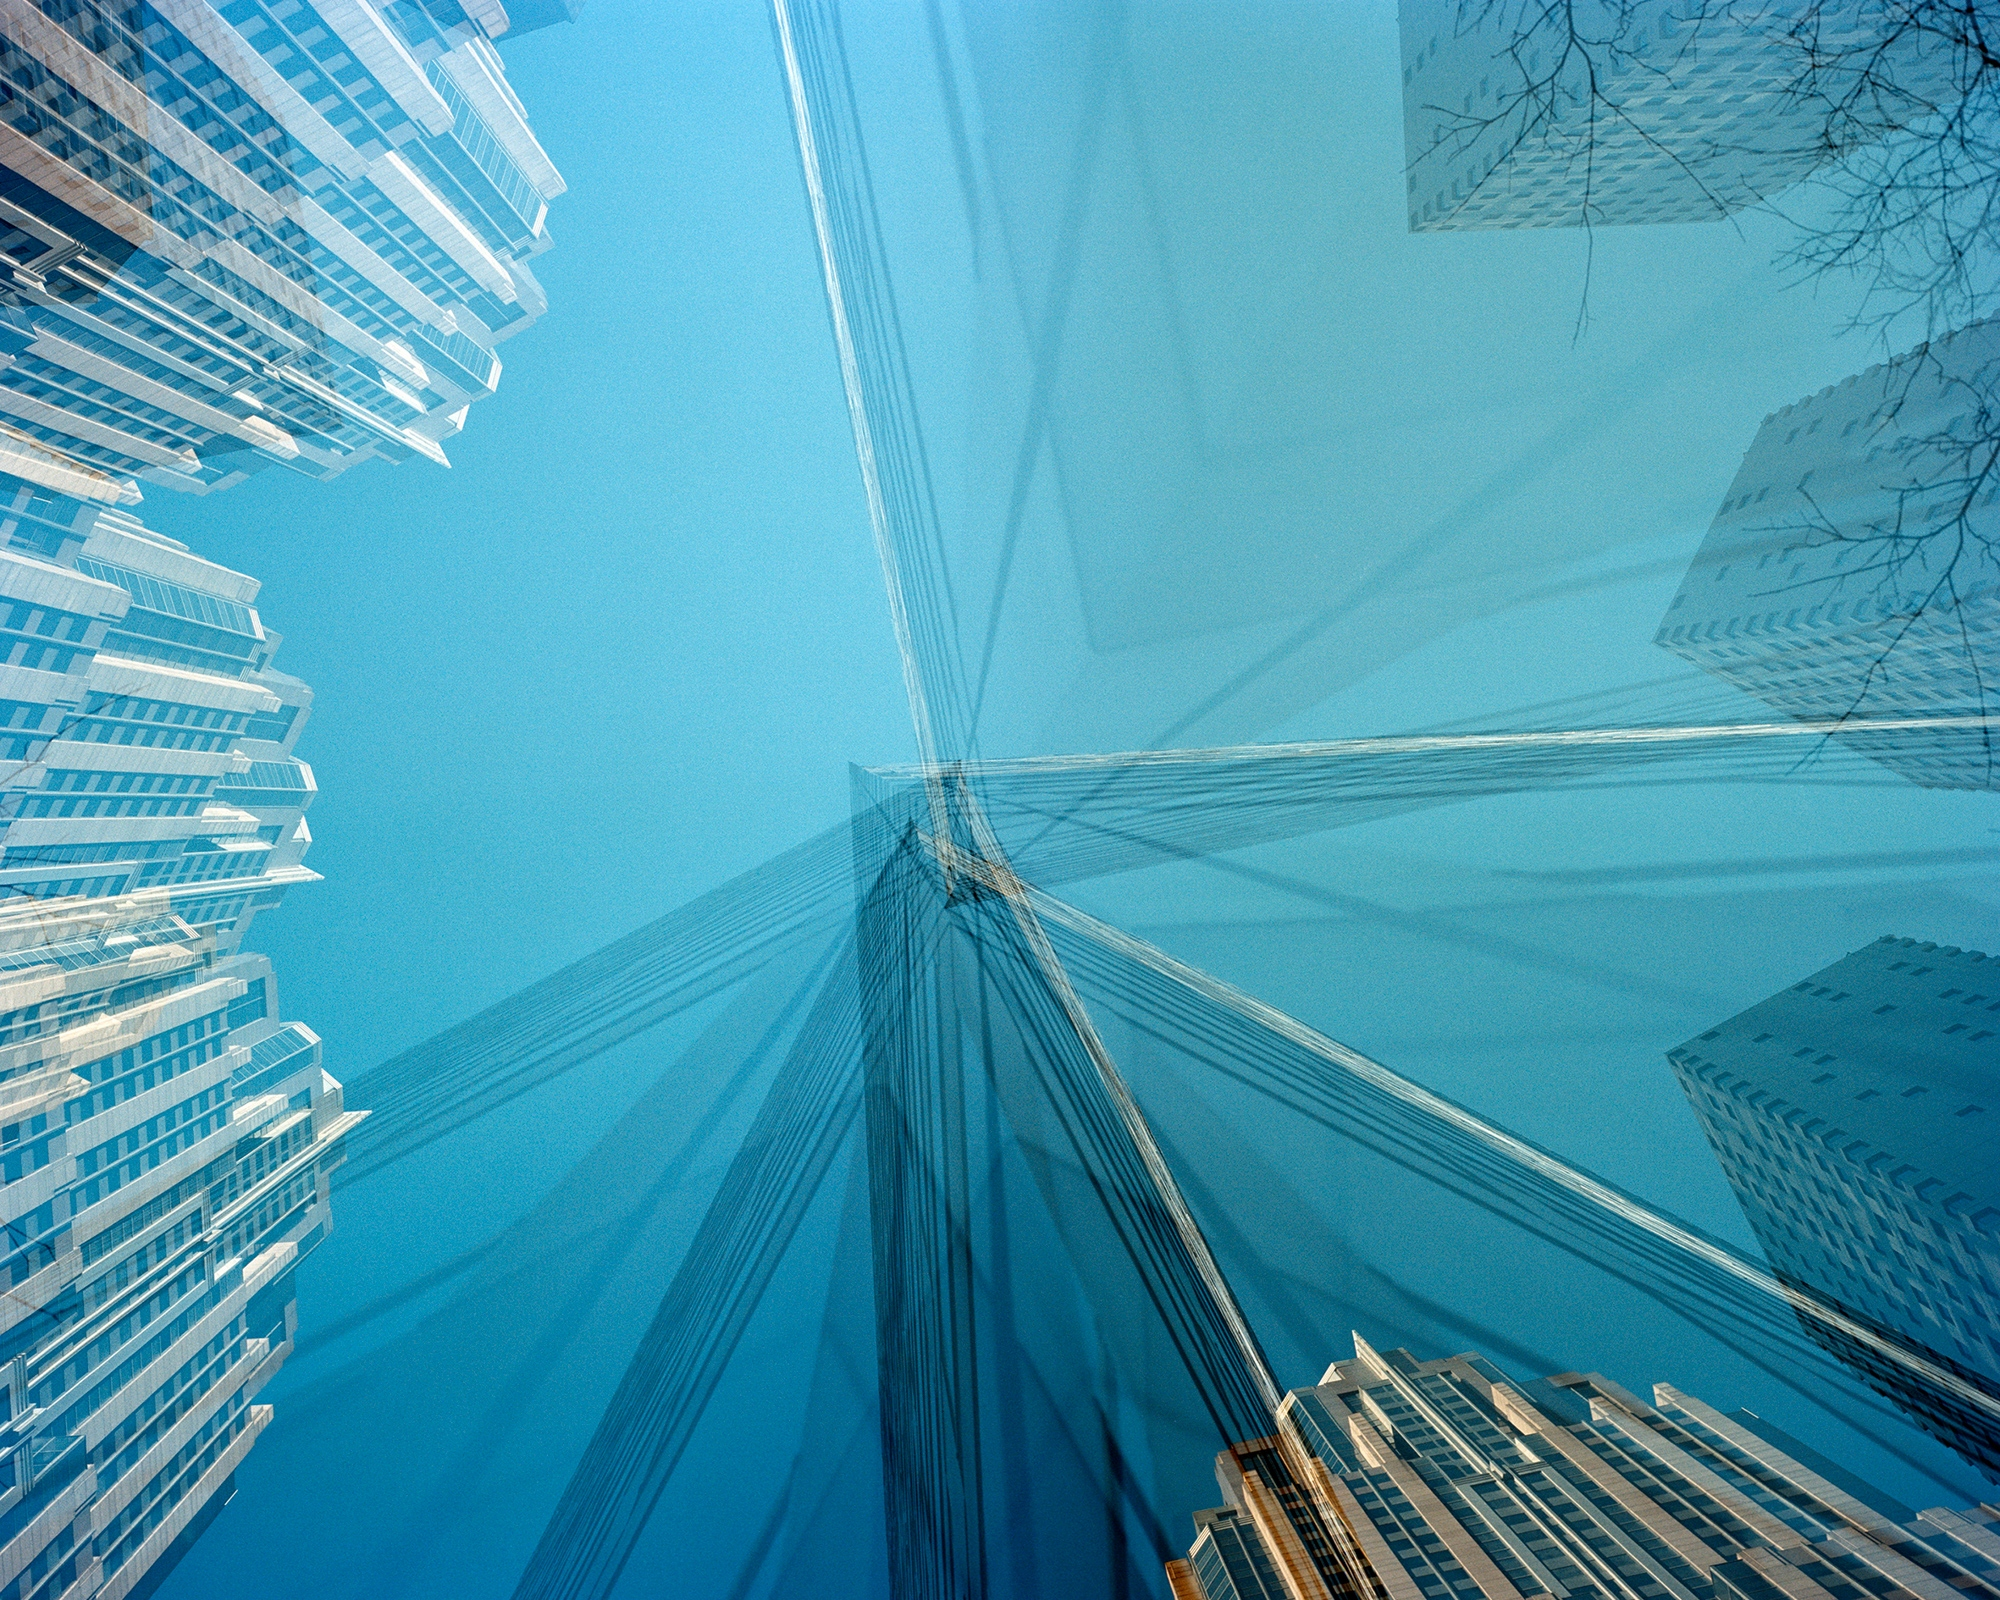 Abstract picture with blue sky and skyscrapers